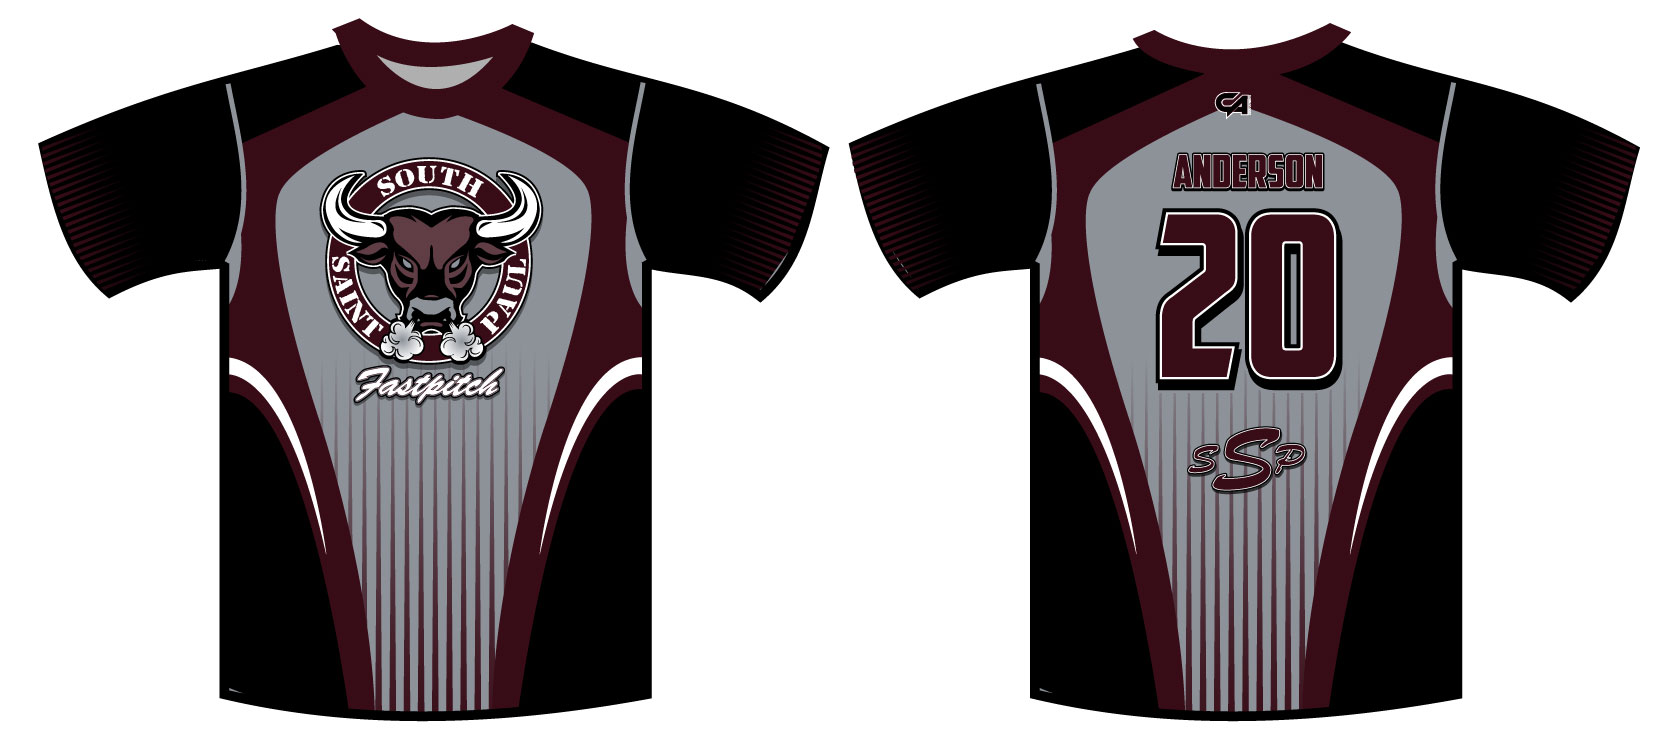 SSP Fastpitch Fan Full Dye Jersey : Custom Apparel Inc.